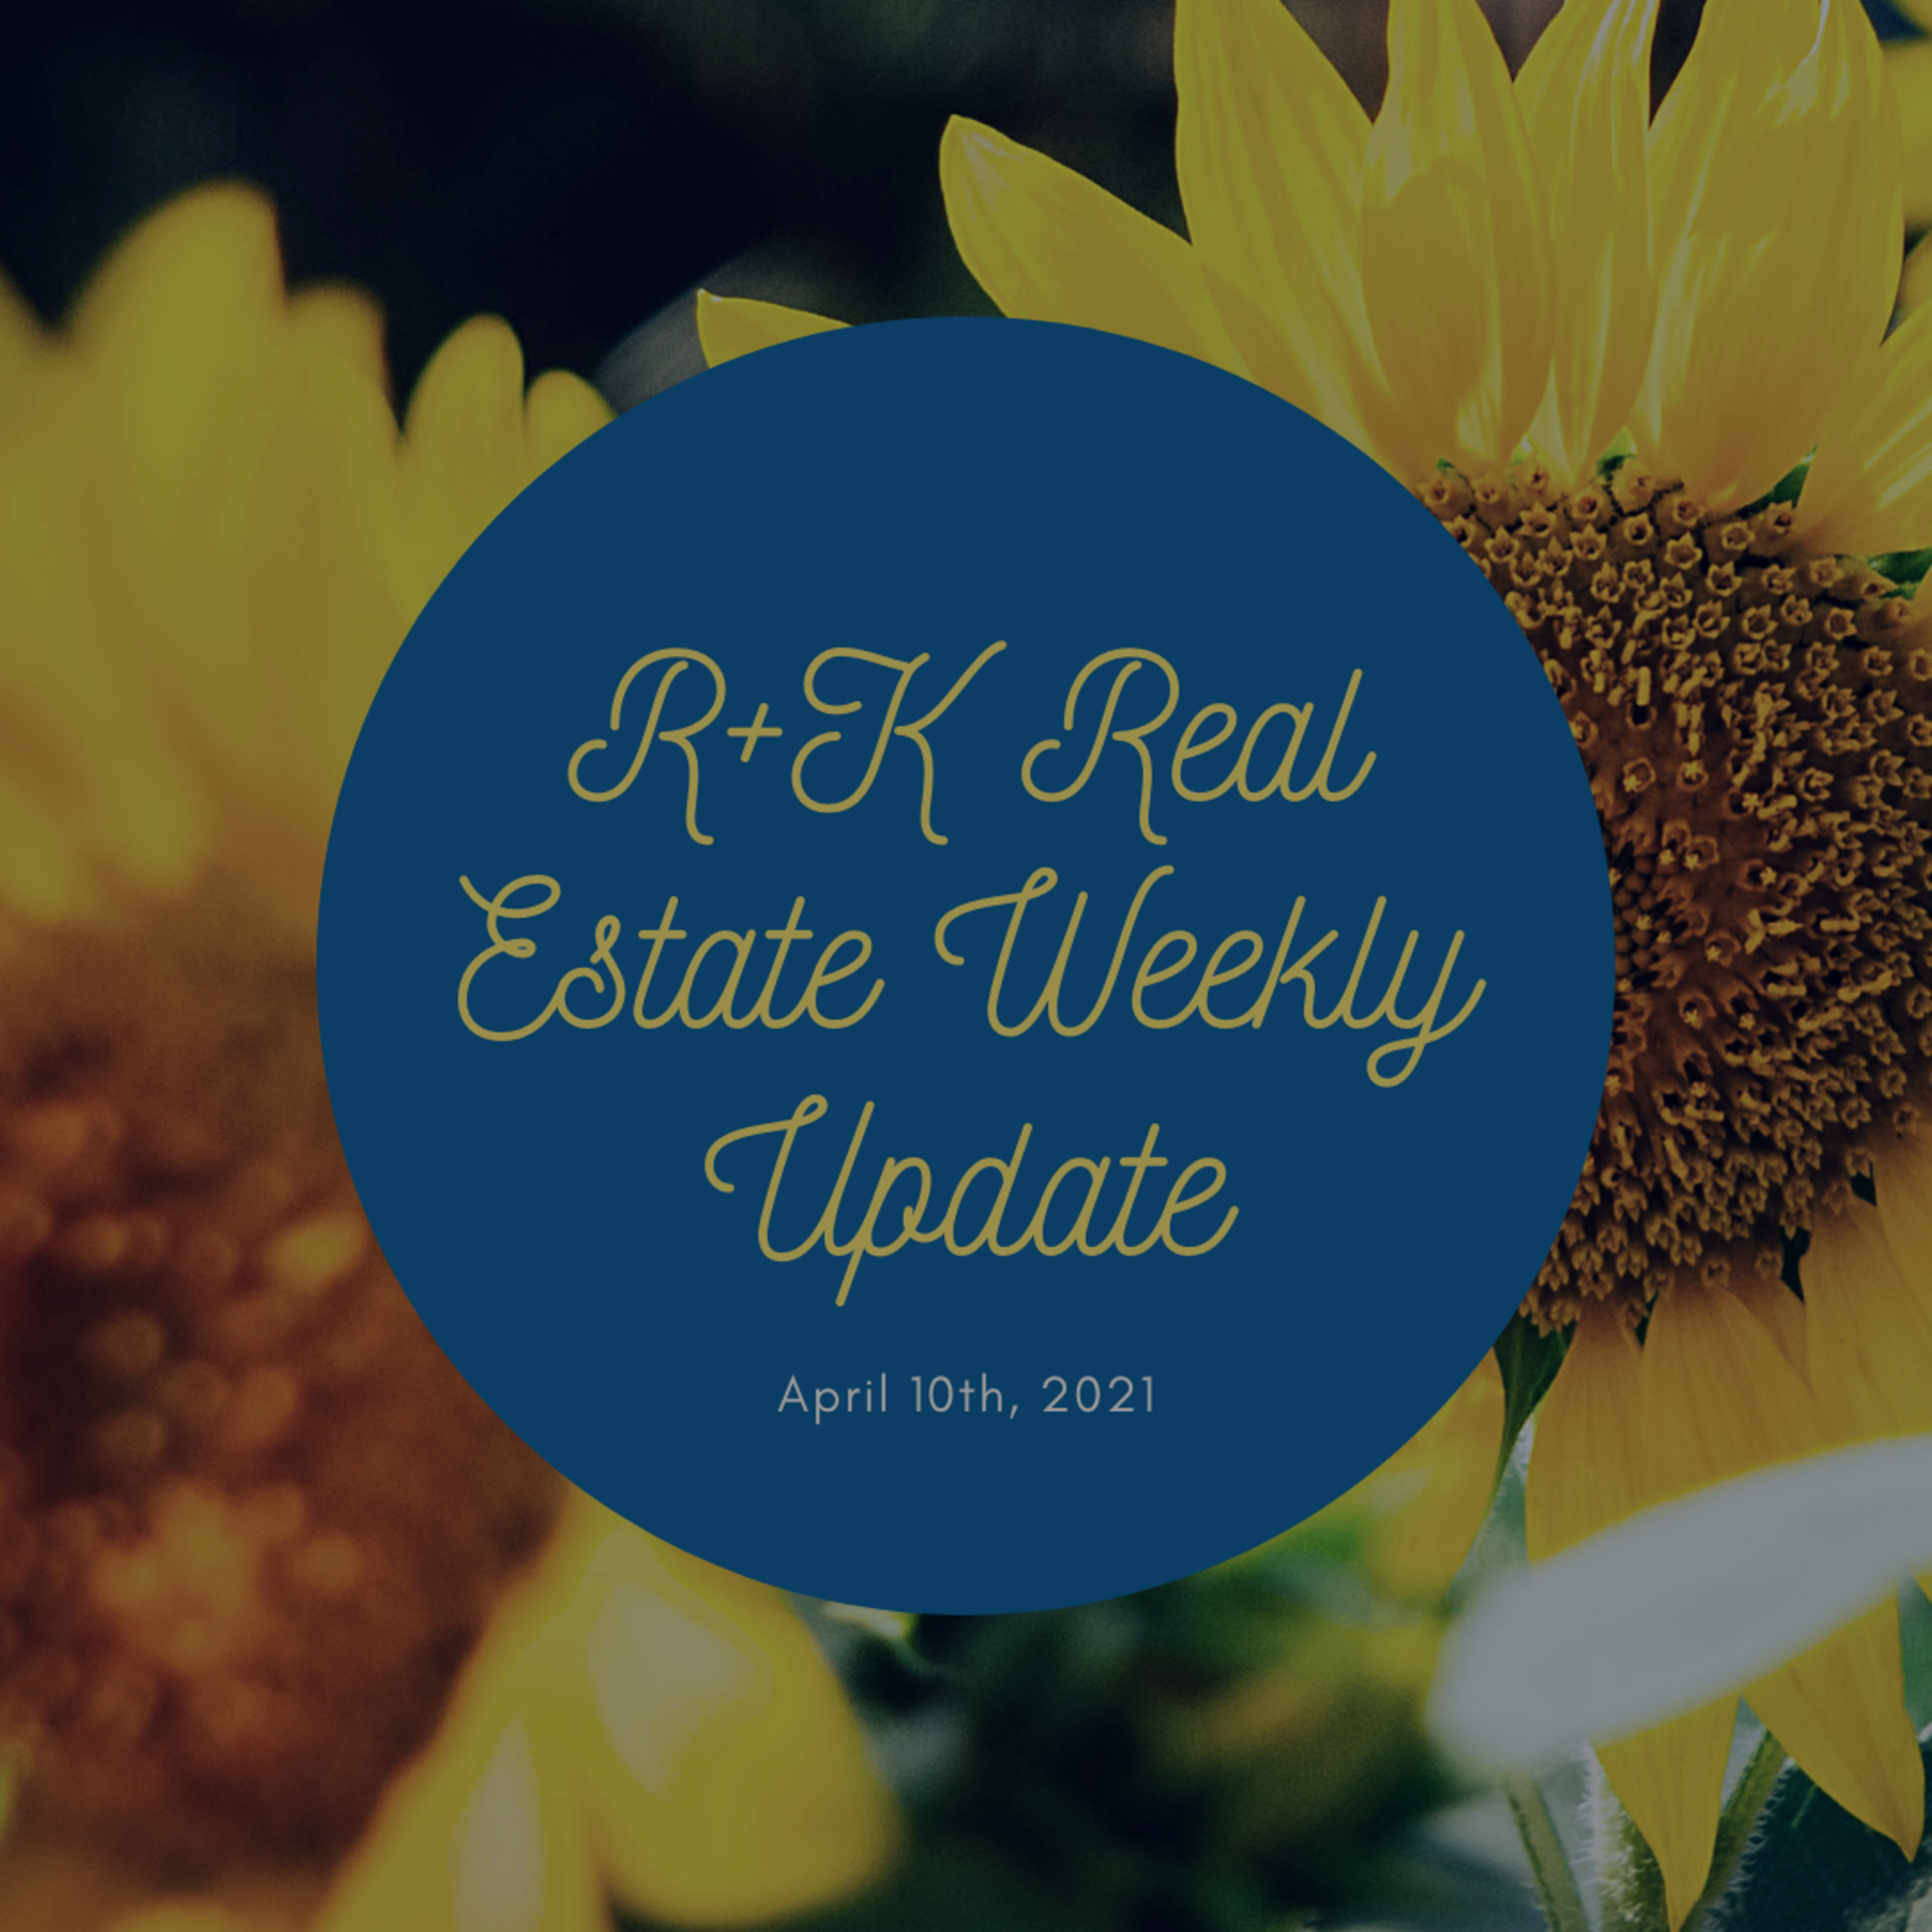 04/09/21 This week with R+K…